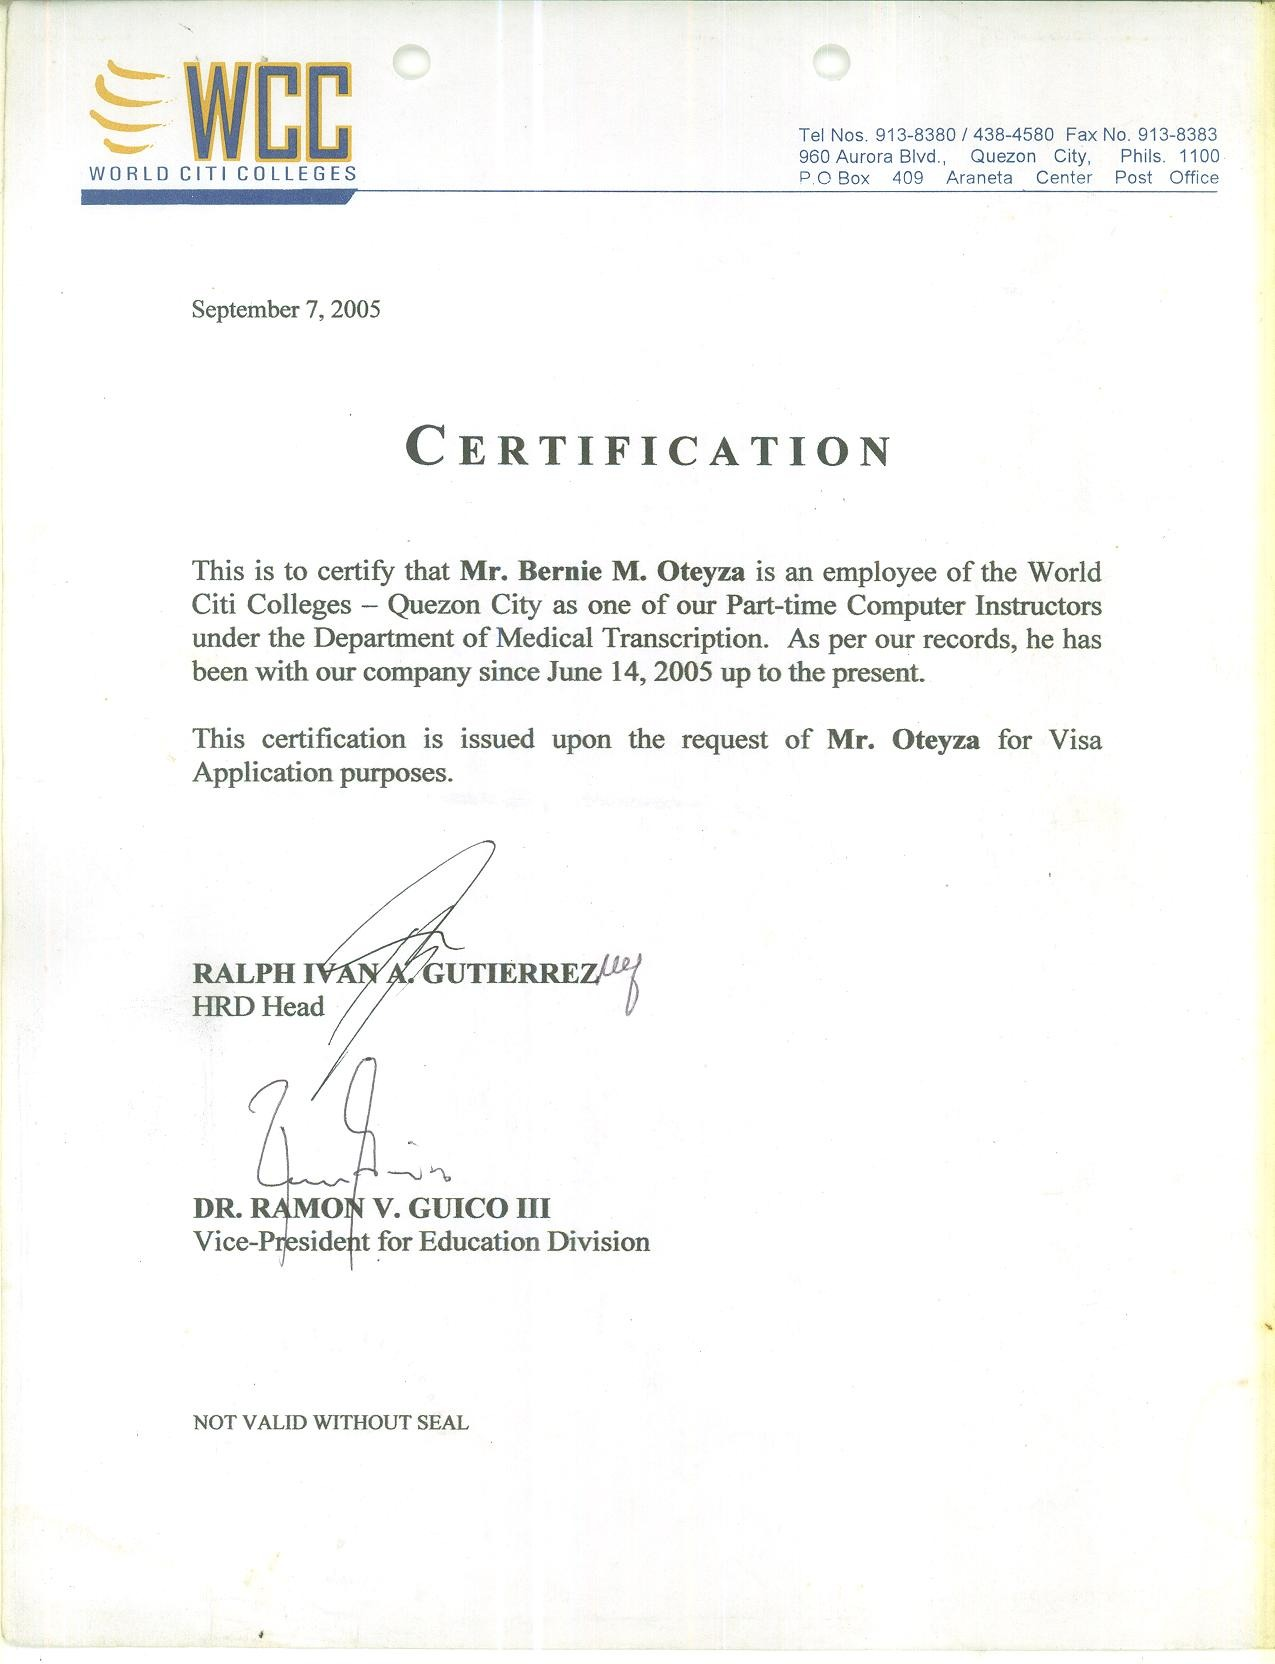 Bernie oteyza bayt certificate of employment certificate xflitez Image collections